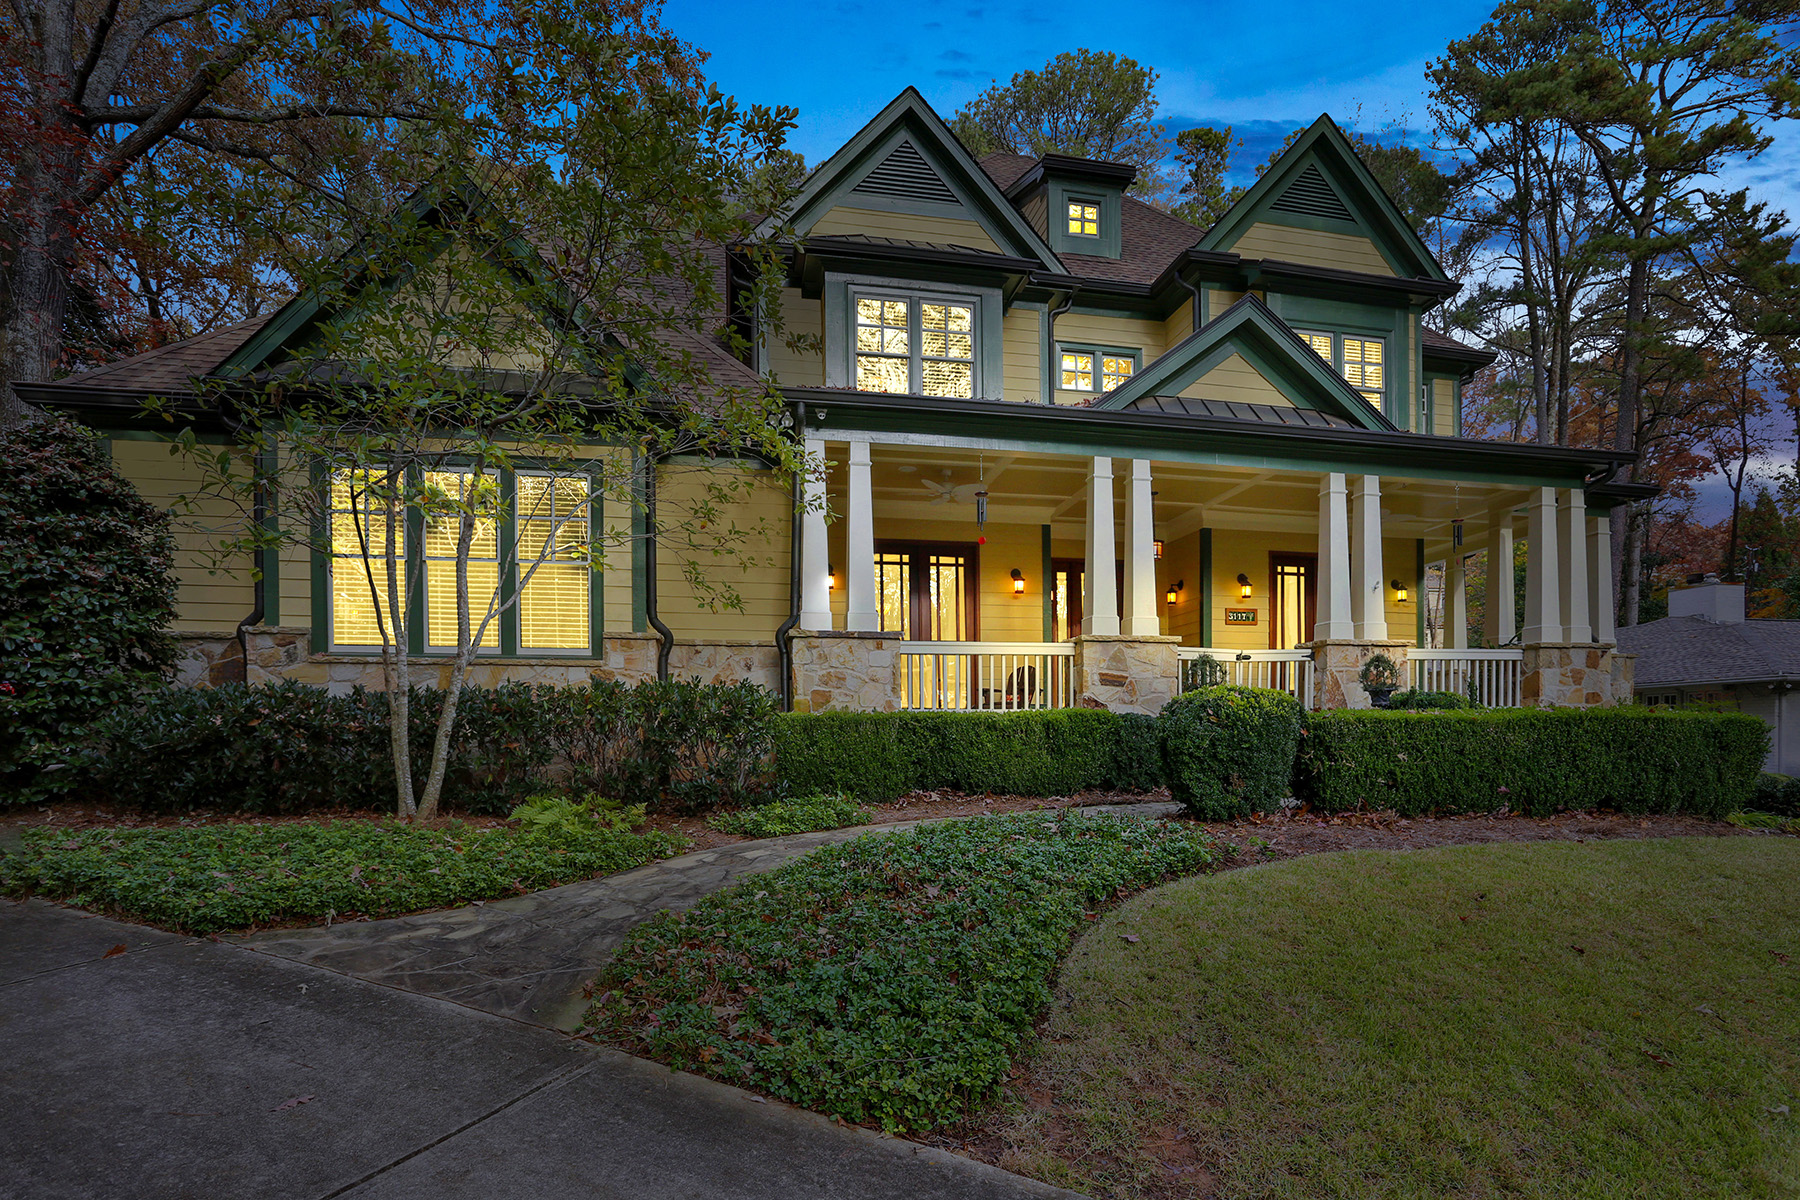 Single Family Home for Sale at Beautiful Craftsman in the Heart of Pine Hills, Buckhead 3117 W Roxboro Road NE Atlanta, Georgia 30324 United States